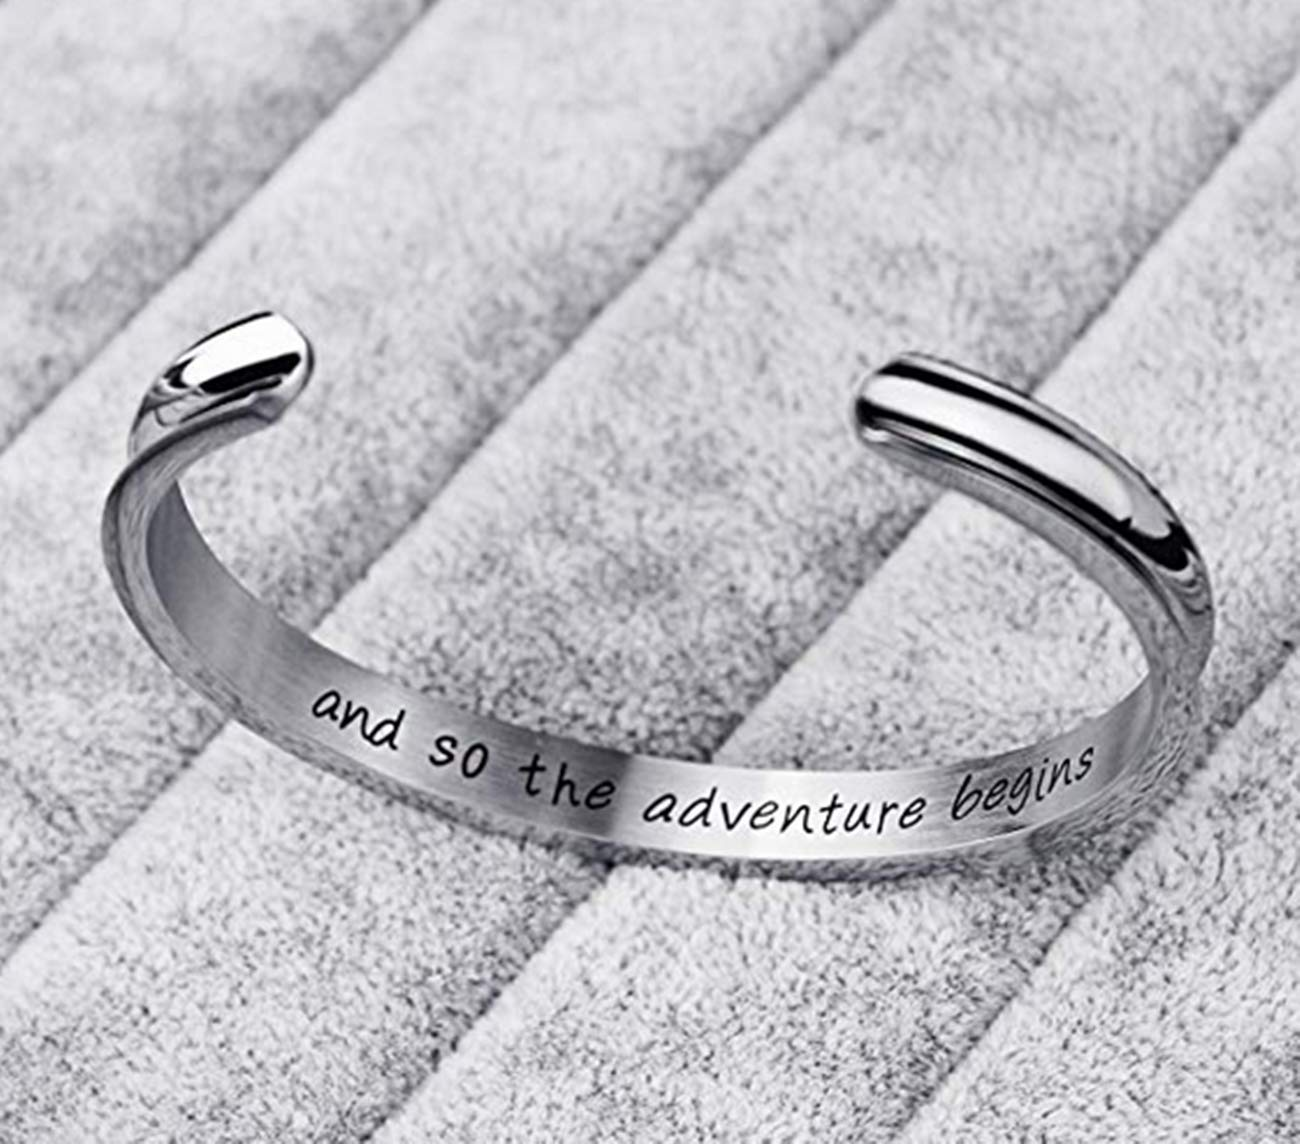 Best Friends Bracelet Sister Jewelry -Not Sisters by Blood But Sisters by Heart-Stainless Steel Friendship Bracelets Cuff Bangle Gifts for Women Girls